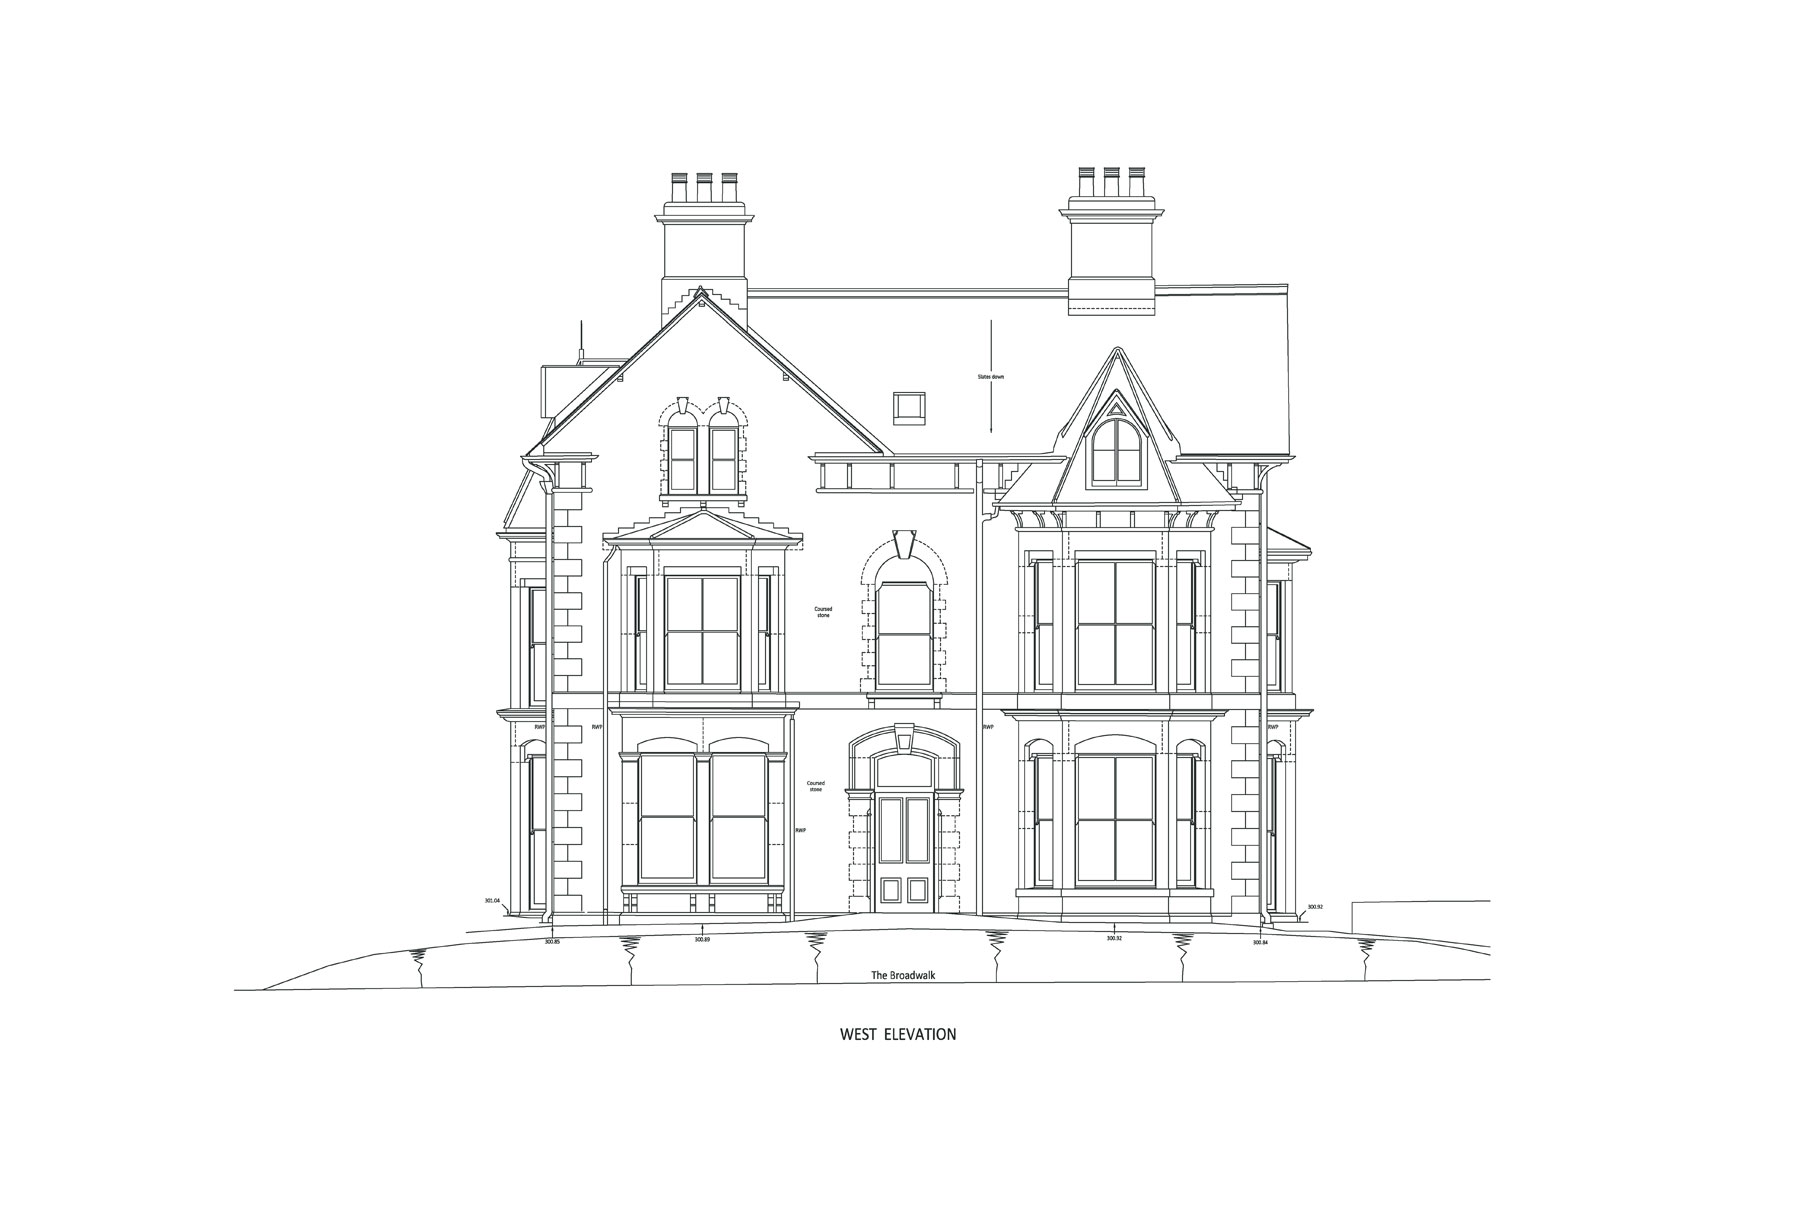 Derby House - West Elevation